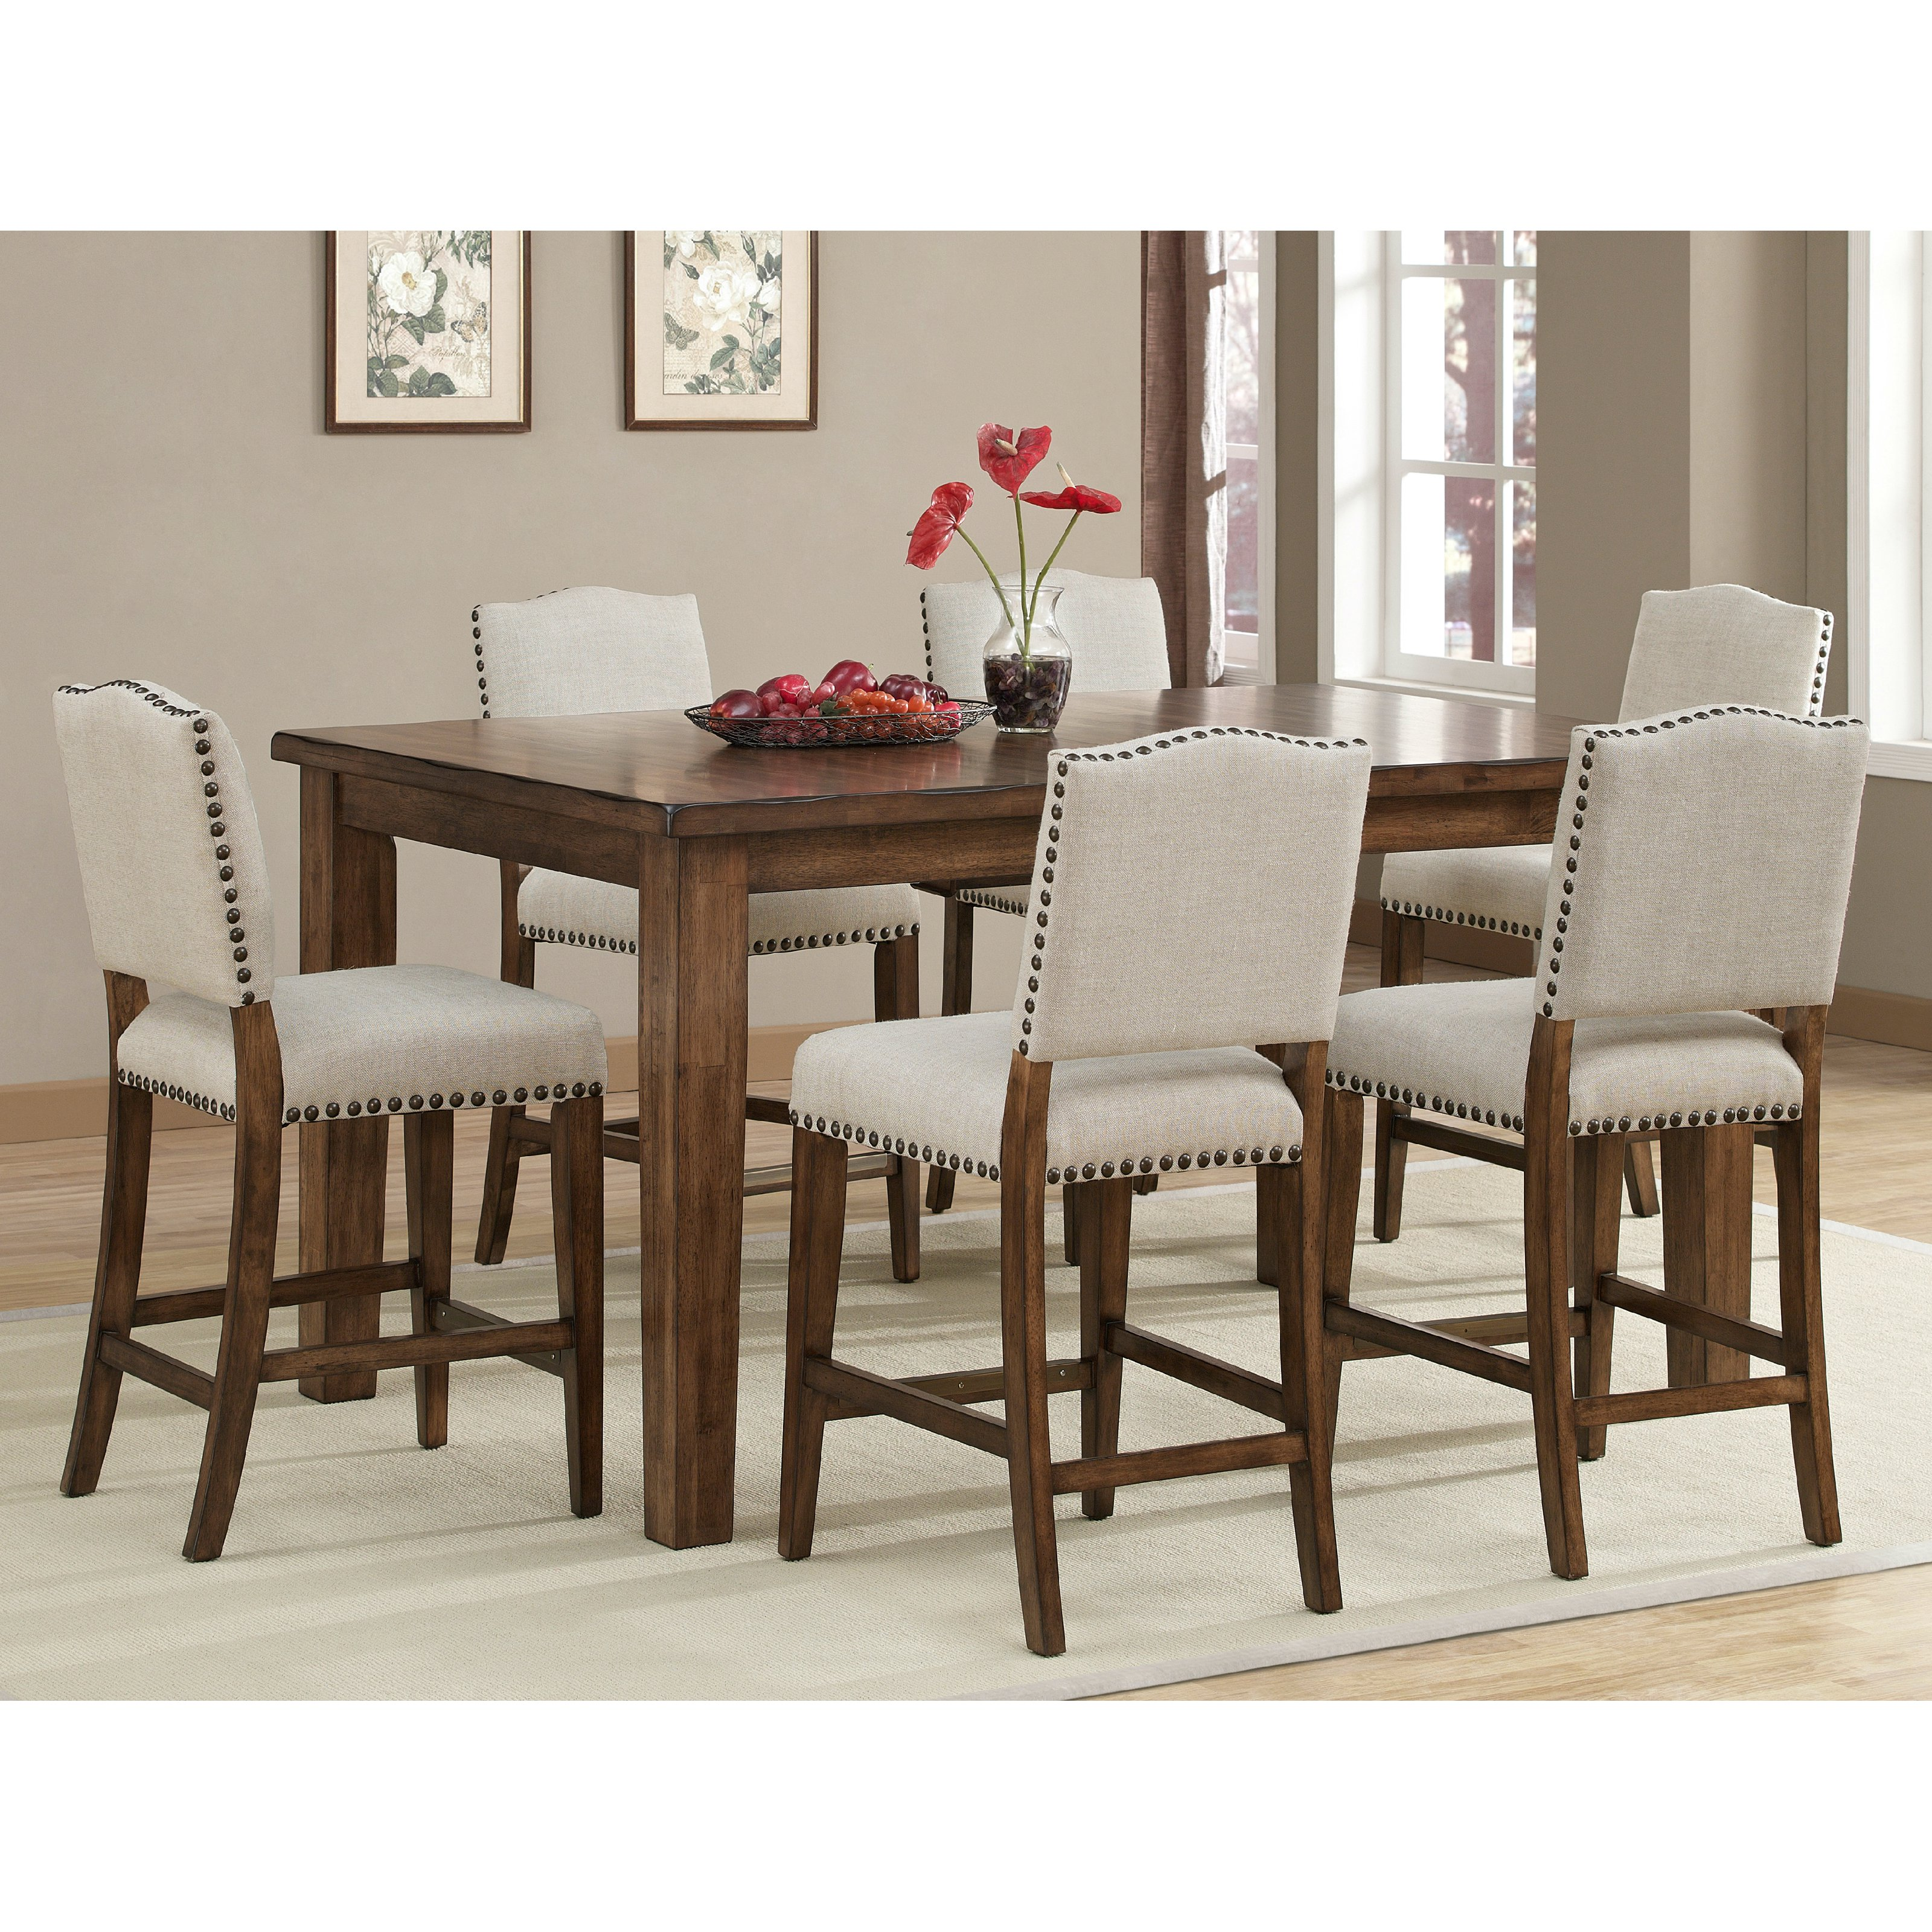 Attractive ahb cameo counter height dining table in coastal grey | hayneedle pdglhim